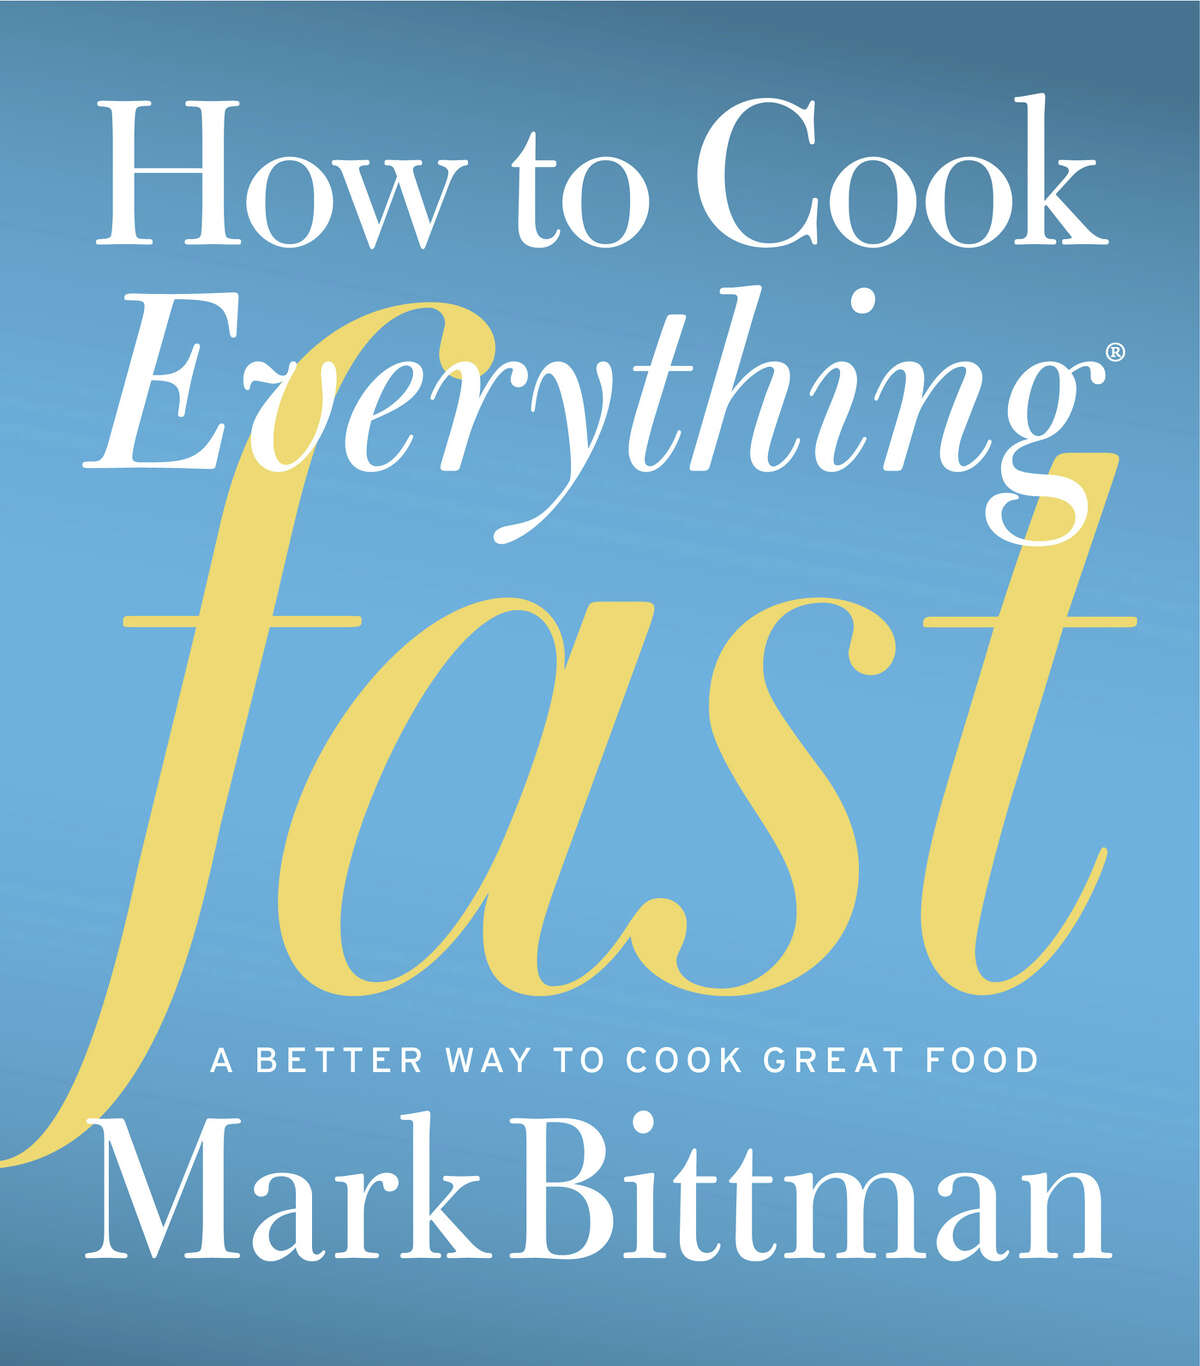 """""""How to Cook Everything Fast"""" by Mark Bittman (Courtesy photo)"""